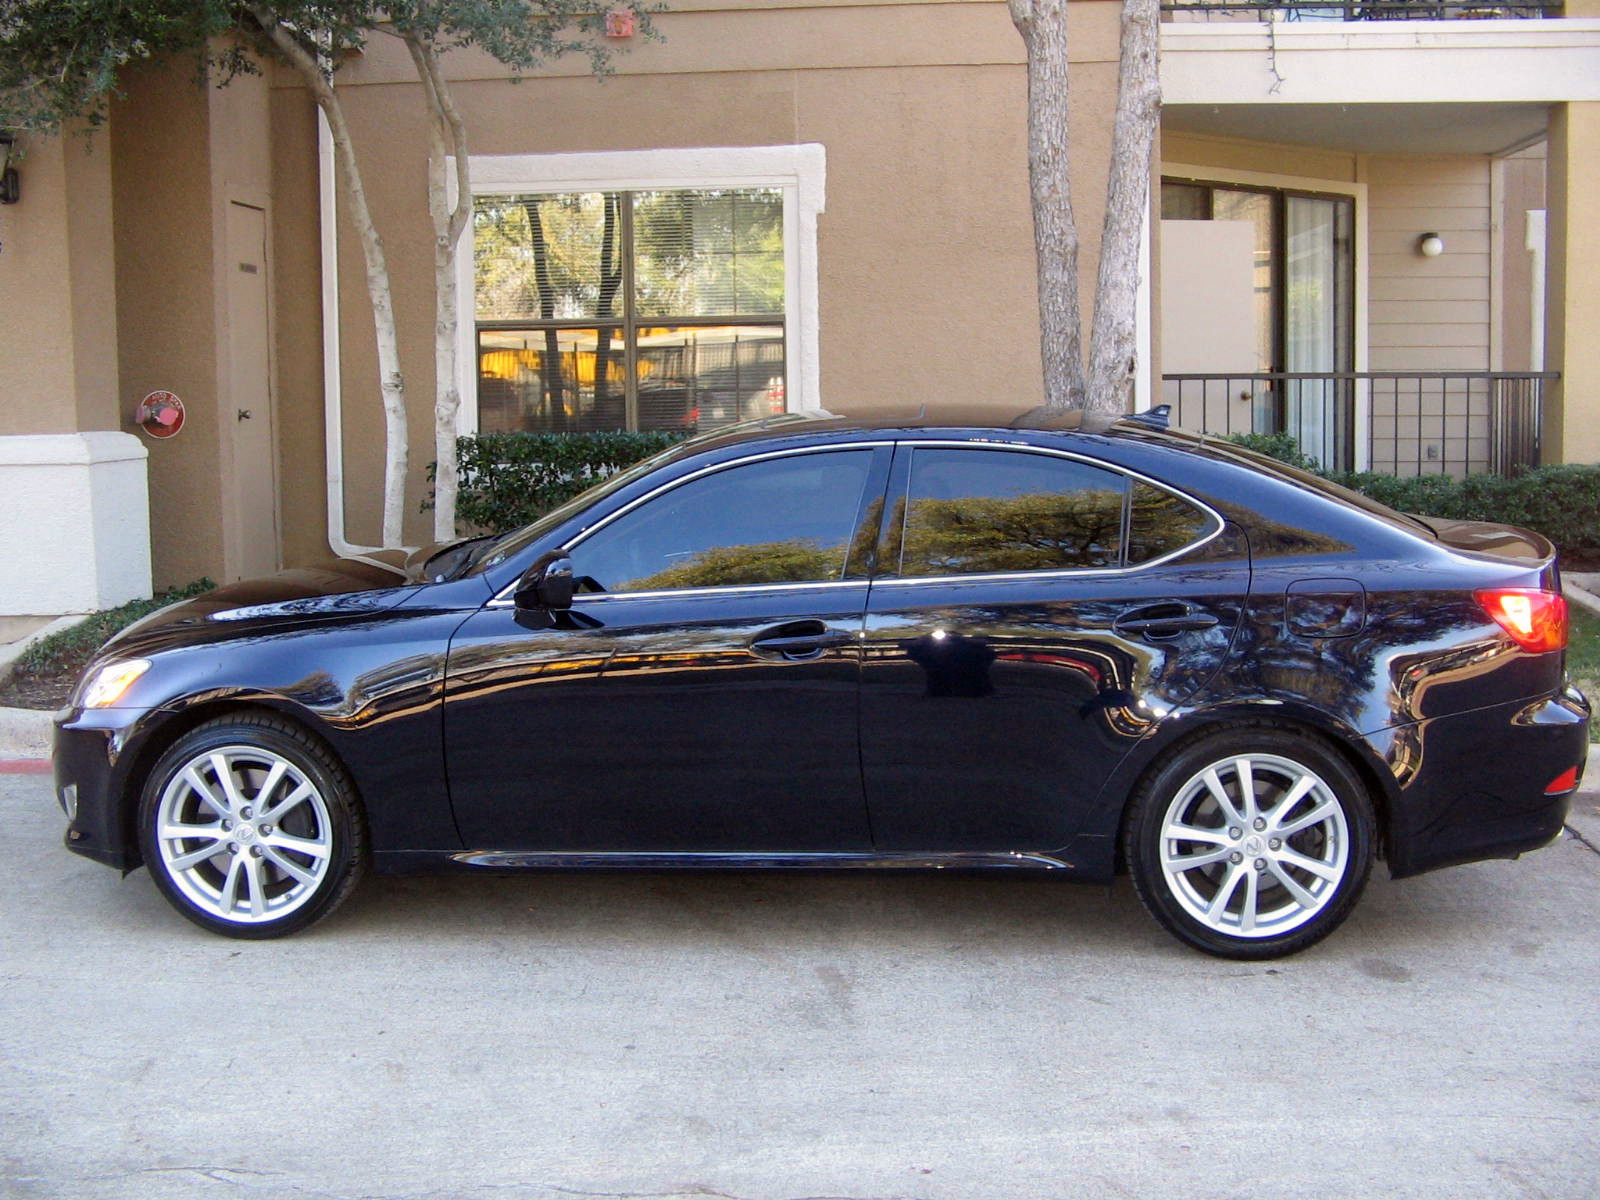 2007 lexus is 350 exterior pictures cargurus. Black Bedroom Furniture Sets. Home Design Ideas